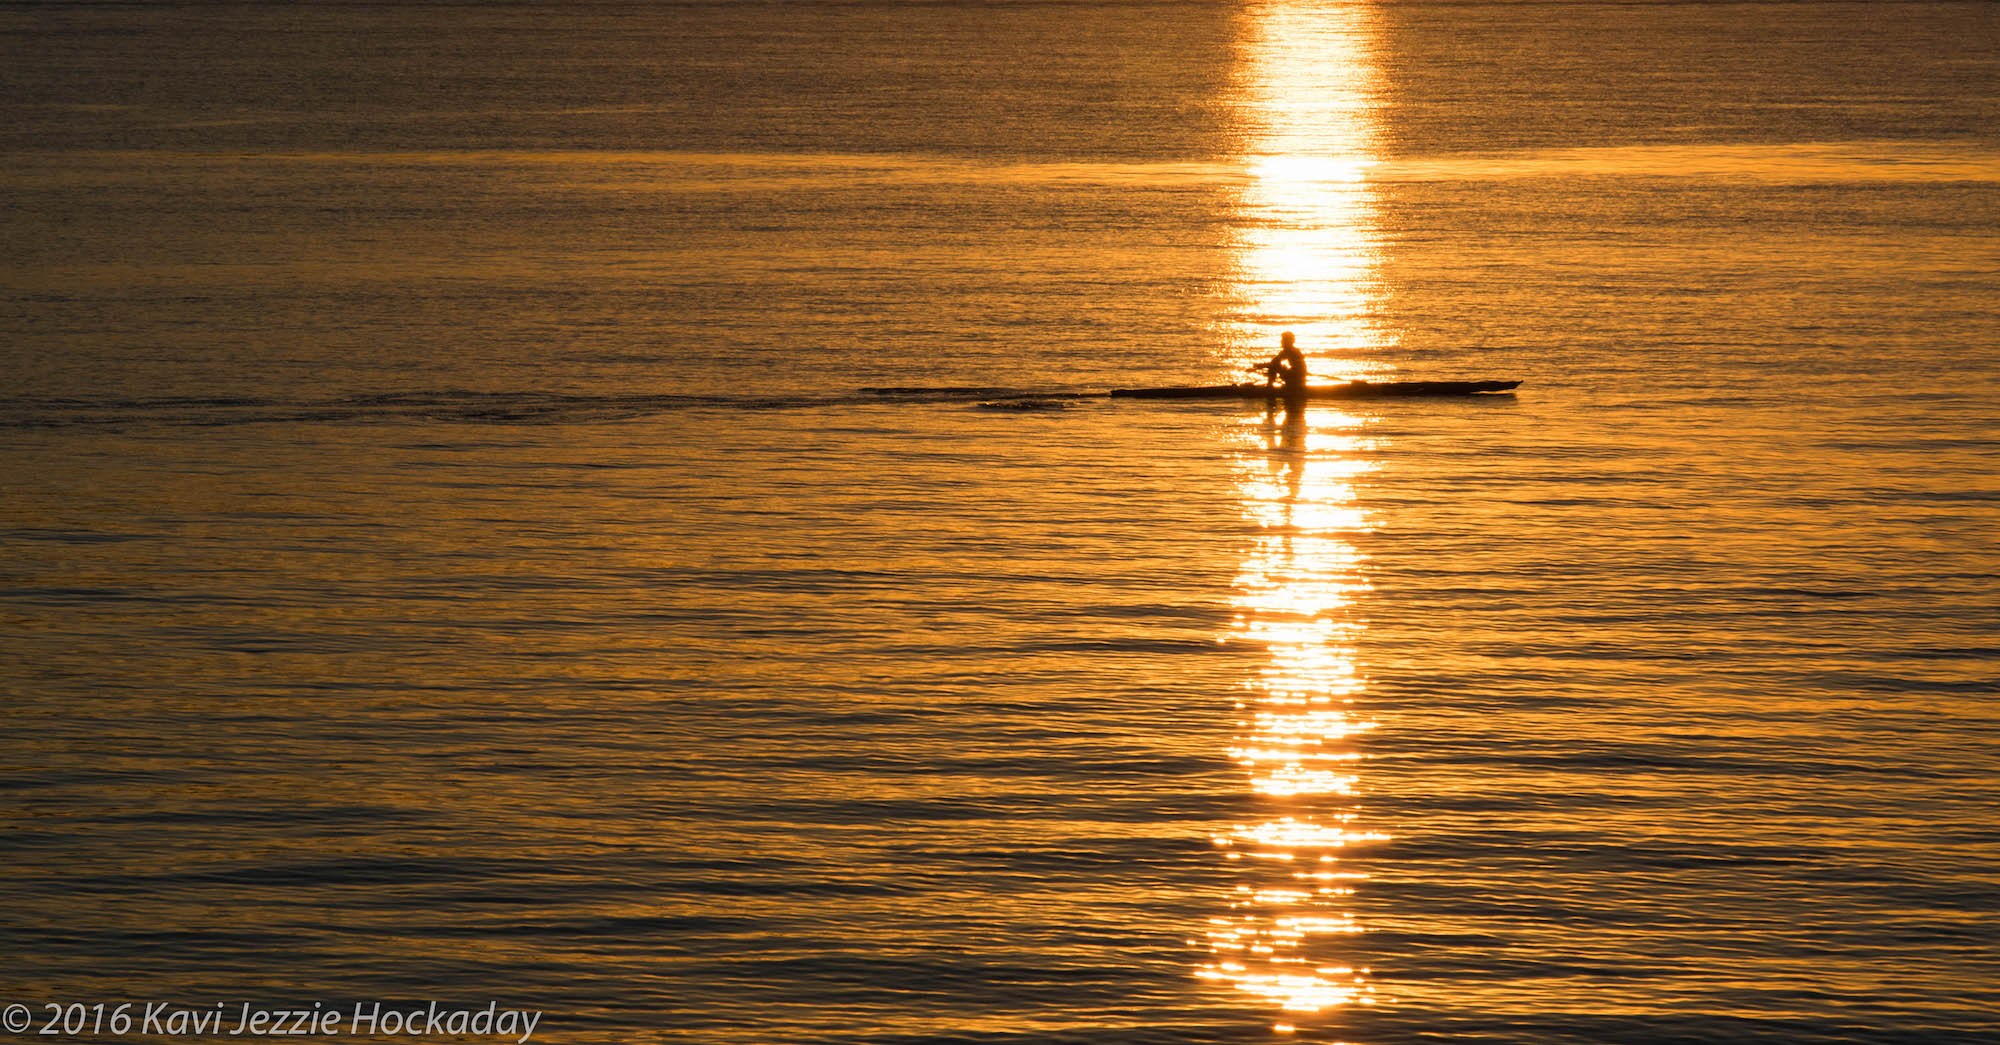 the-rower